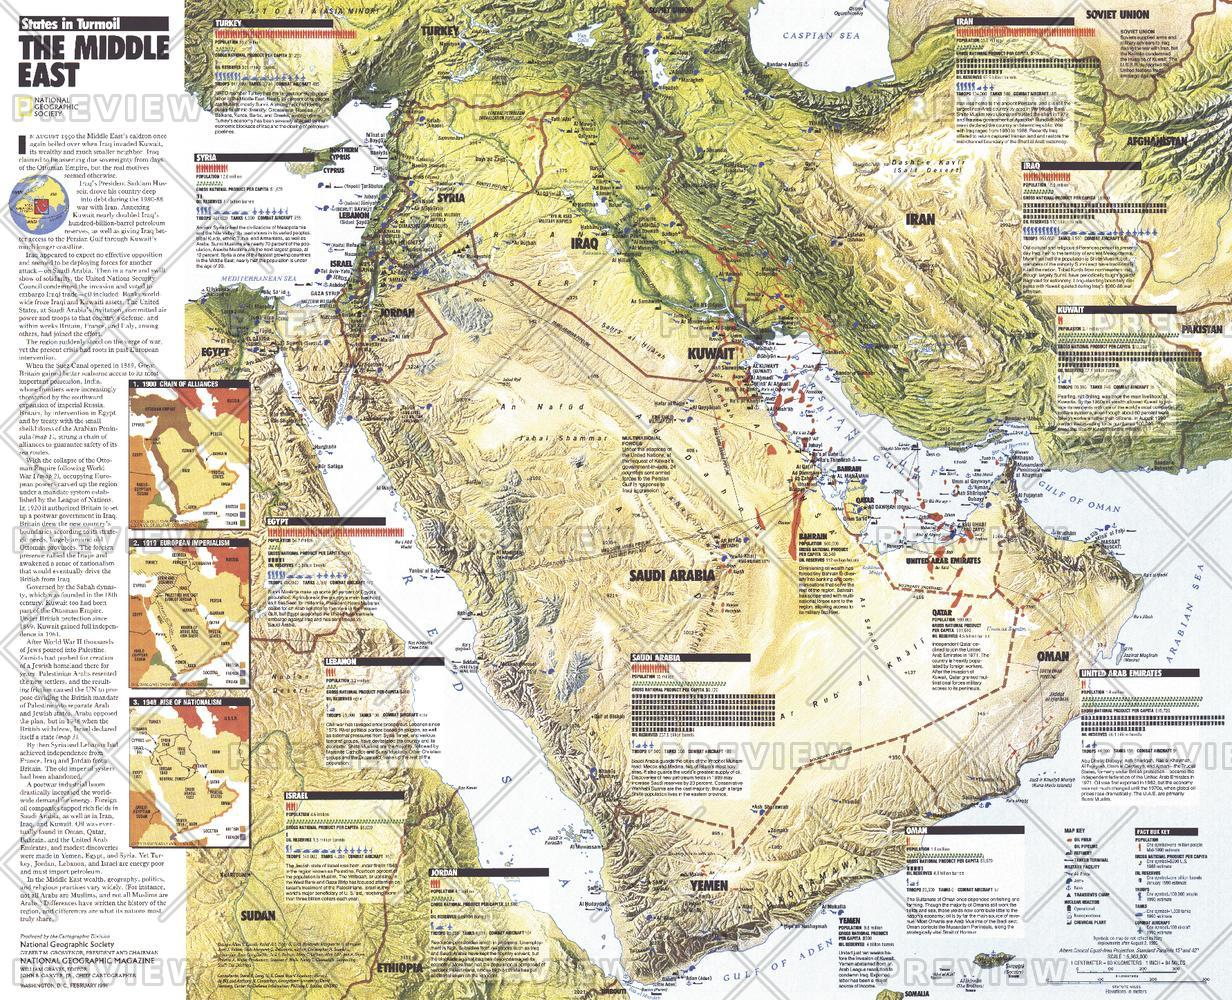 Middle East, States in Turmoil  -  Published 1991